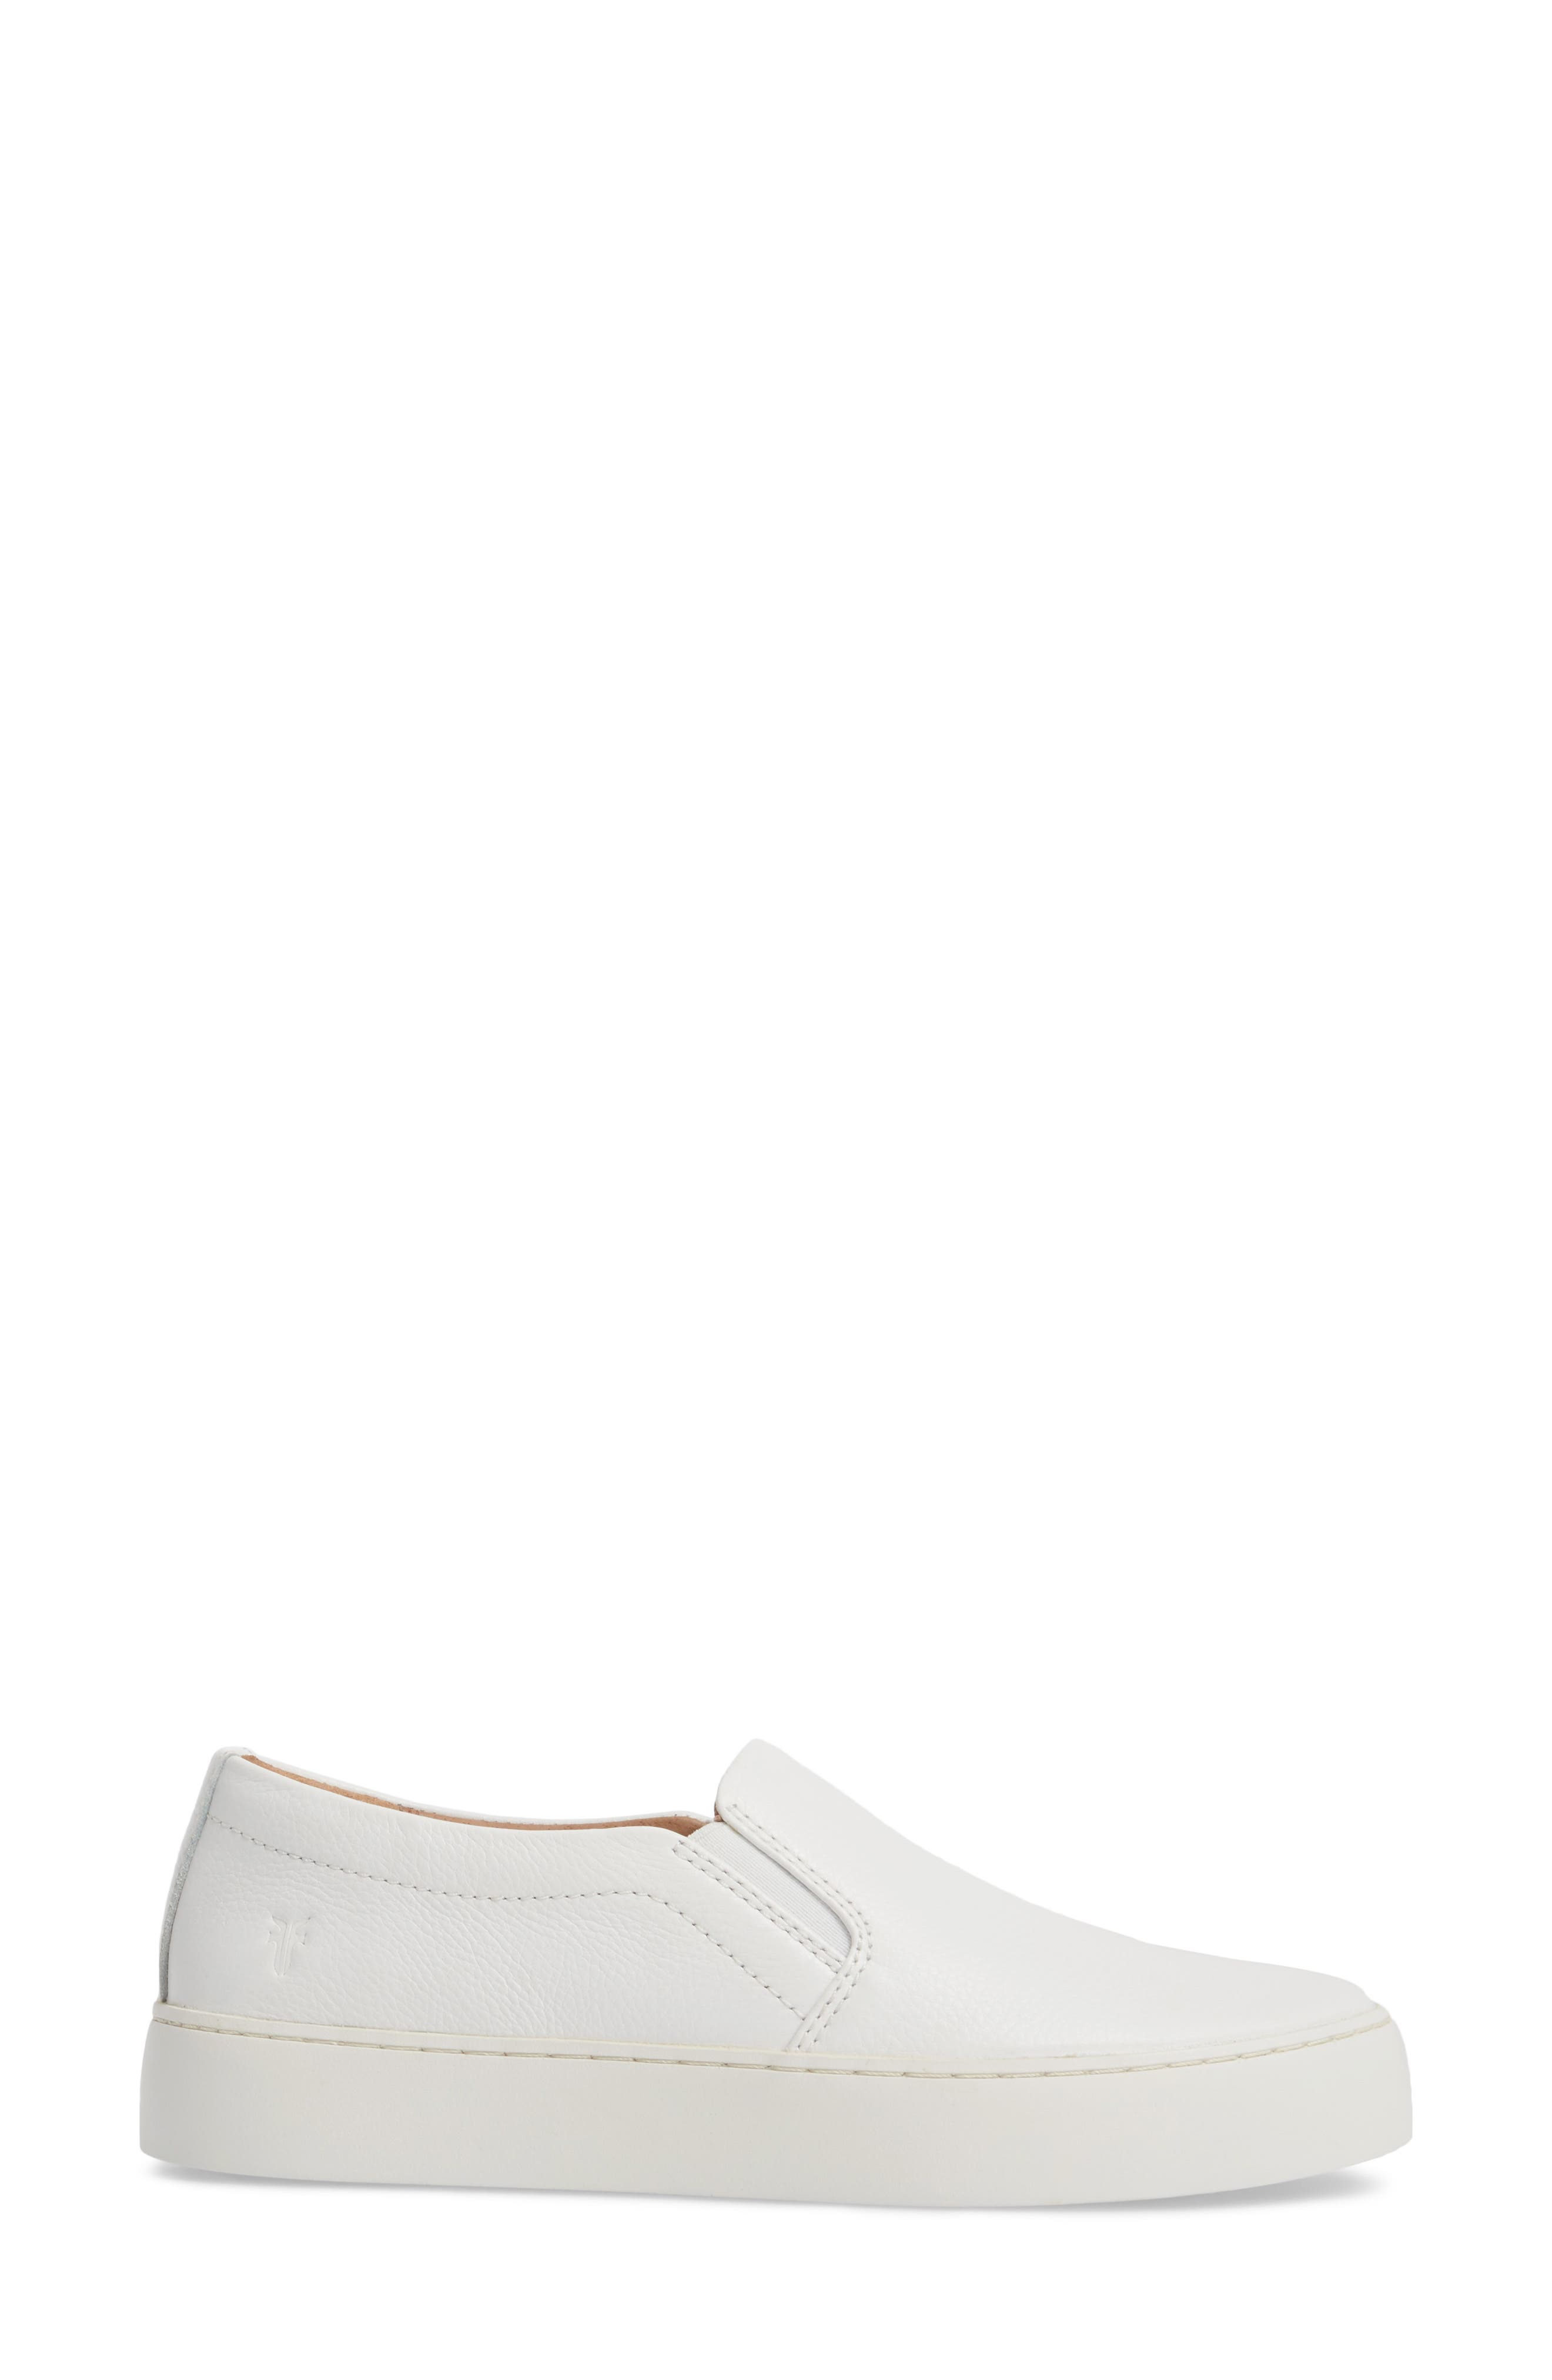 Lena Slip-On Sneaker,                             Alternate thumbnail 3, color,                             White Leather